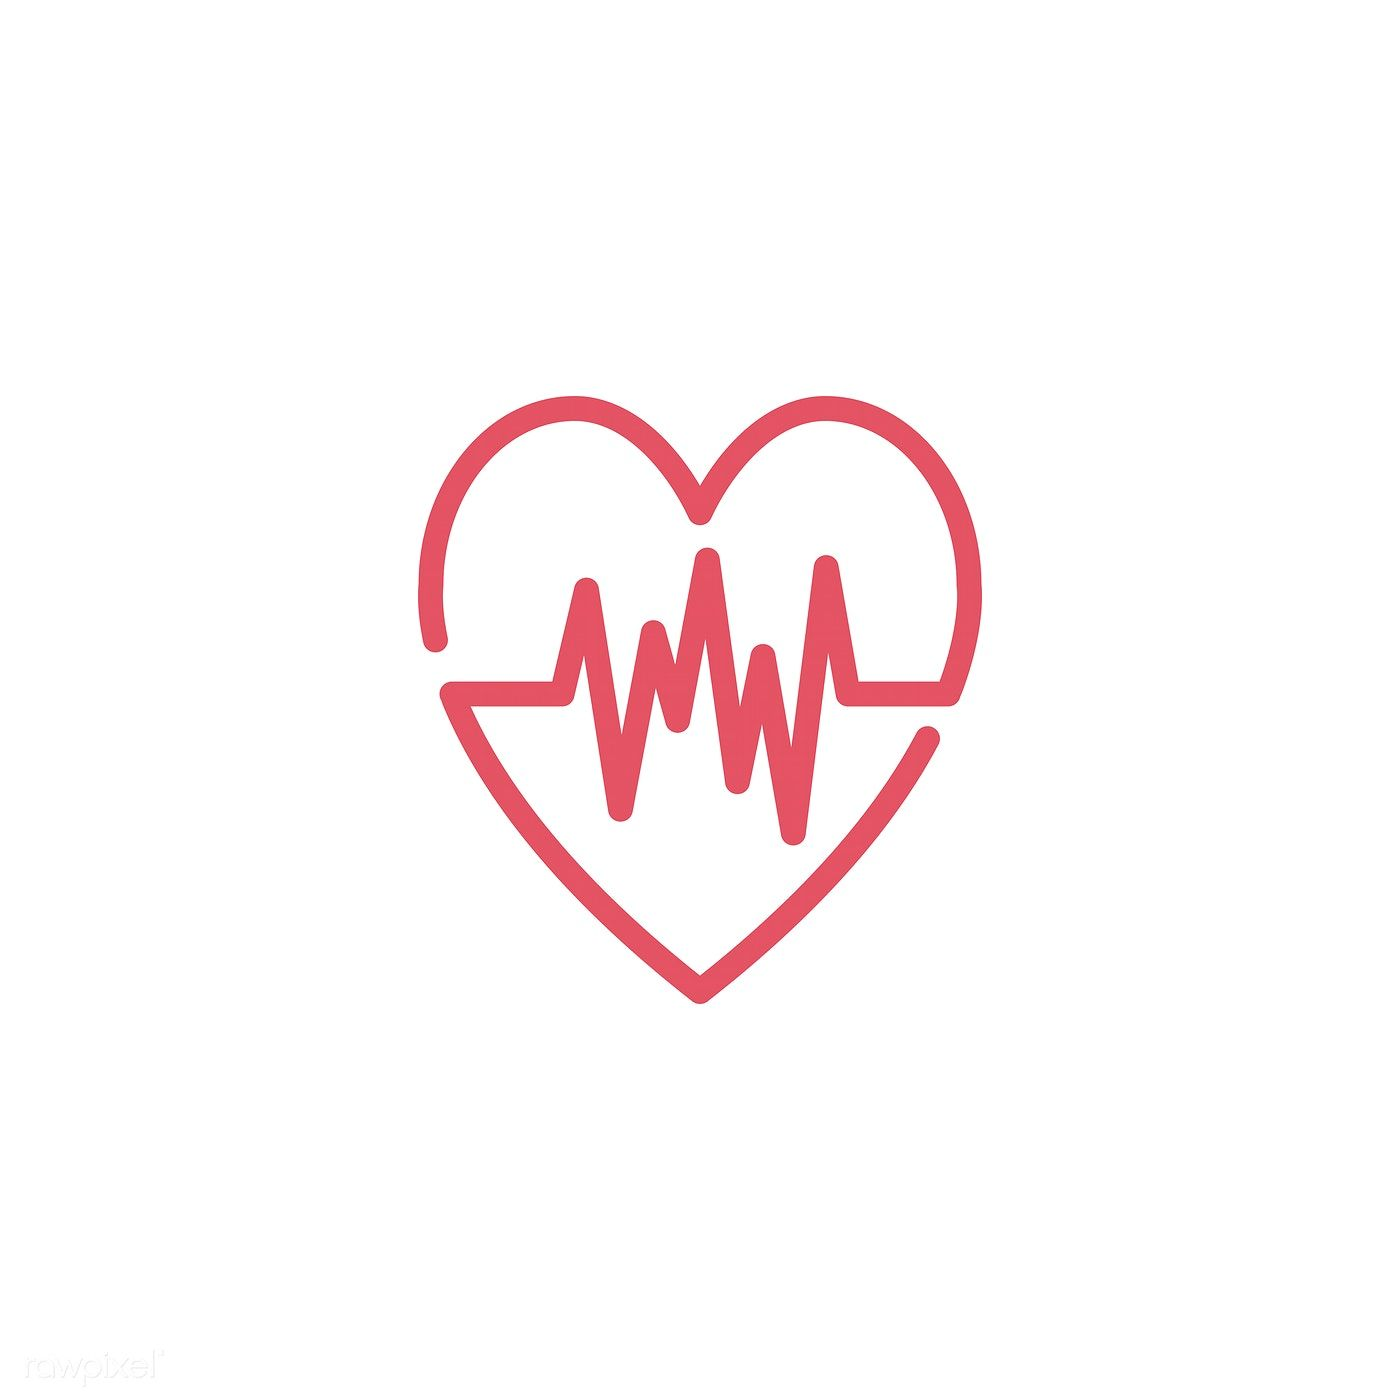 Heart Icon That Beats Heartbeat Clipart Heart Icons Healthcare Png And Vector With Transparent Background For Free Download In 2021 Heart Icons Clip Art In A Heartbeat